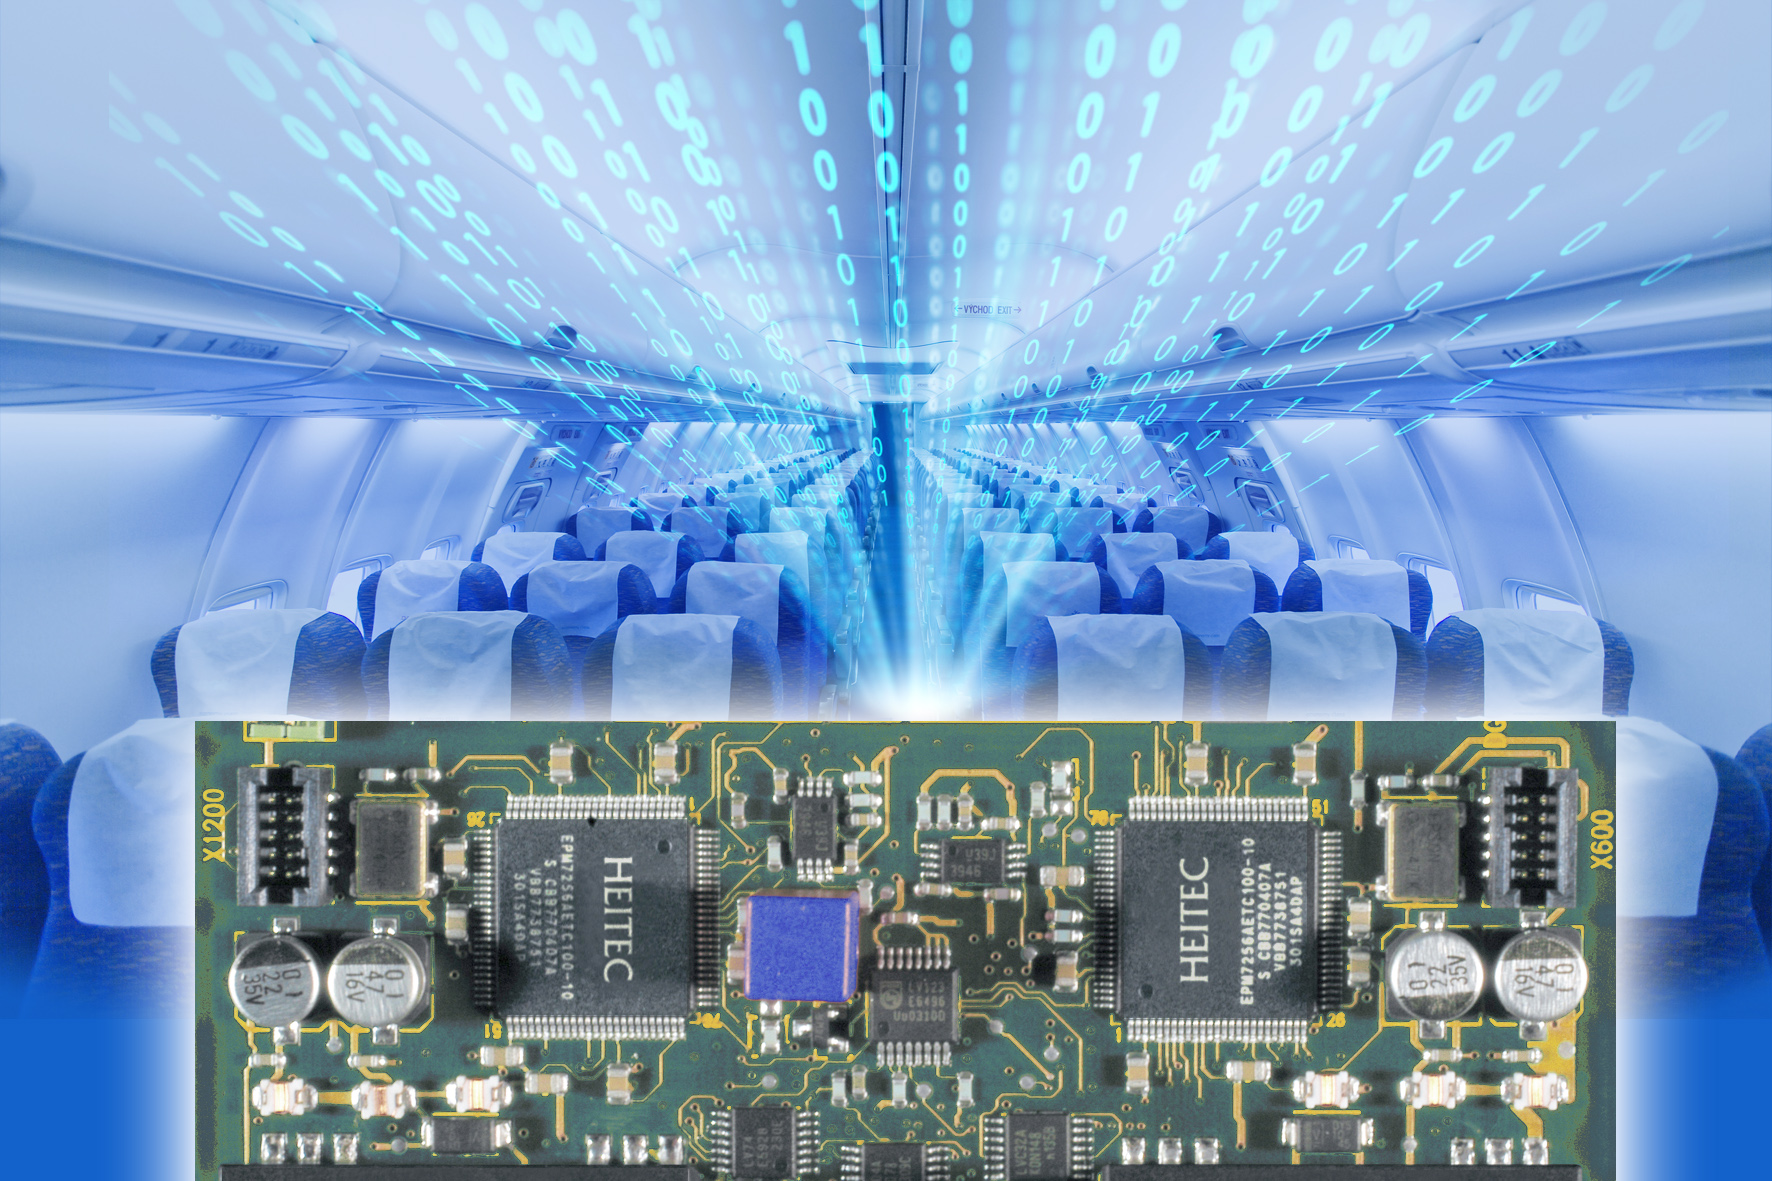 Intelligent LED control demo to be showcased at embedded World 2014